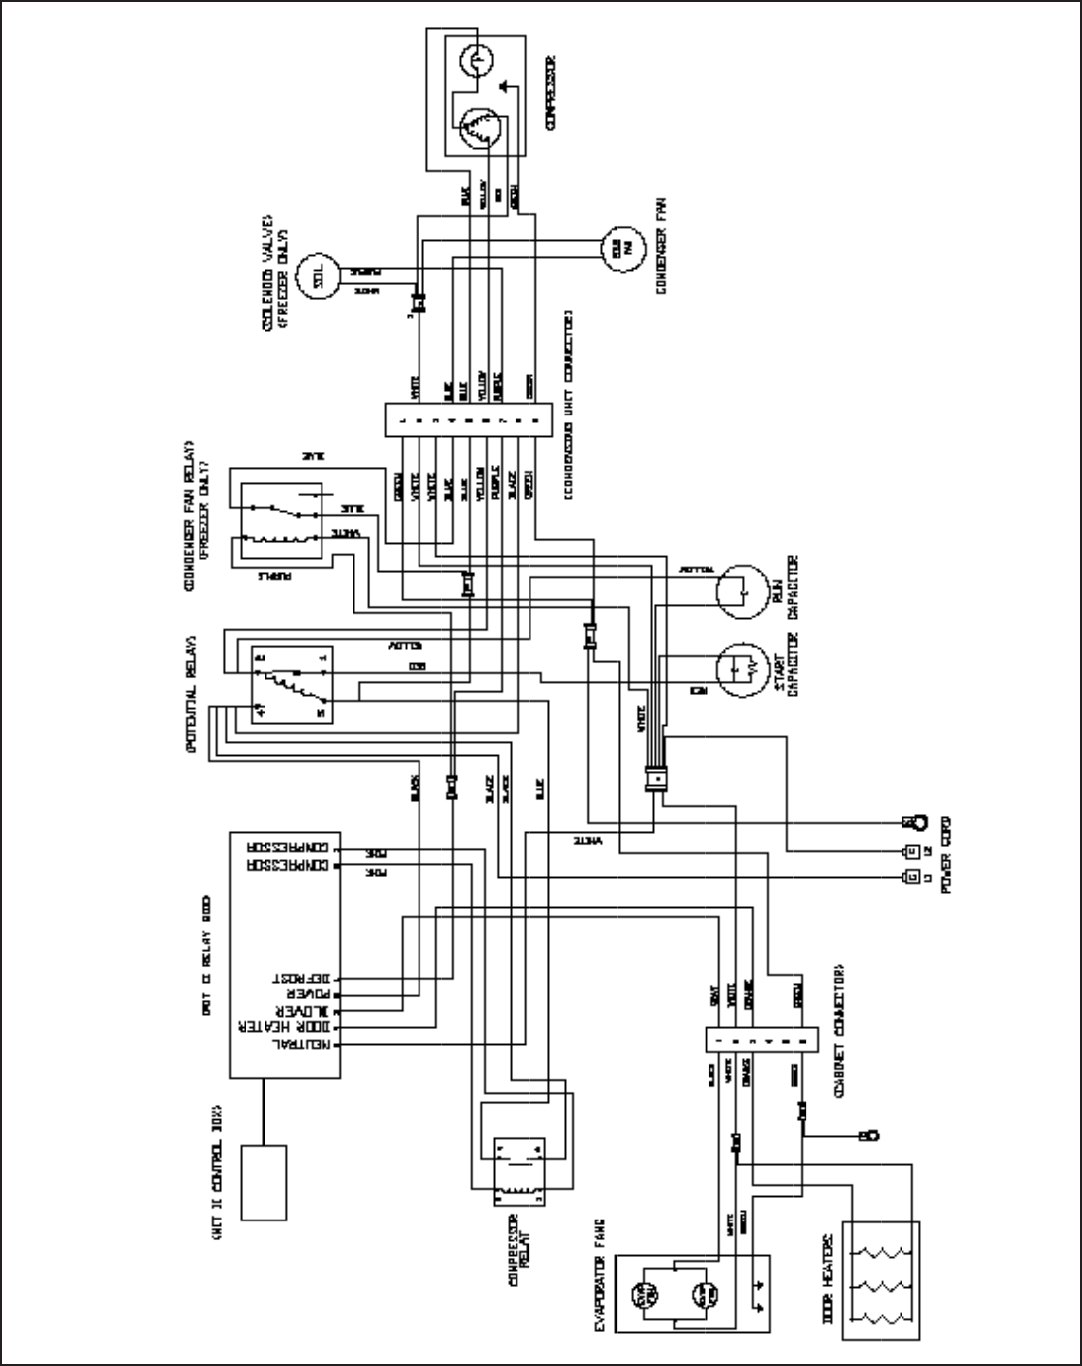 e32f8ecd c967 4244 4de6 e7019d5745fa bg12 page 18 of traulsen refrigerator tu072lt user guide on traulsen g20010 wiring diagram